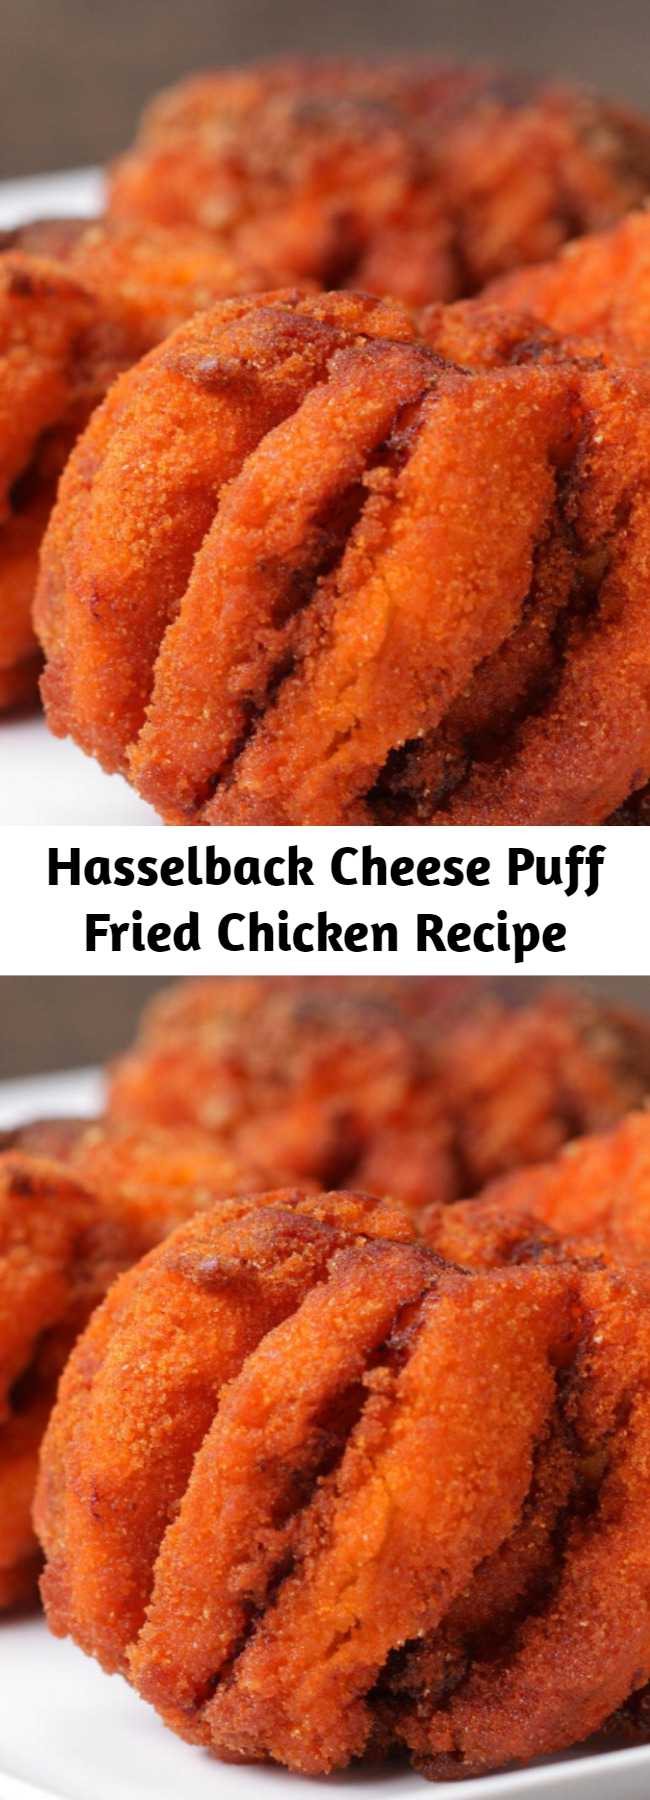 Hasselback Cheese Puff Fried Chicken Recipe